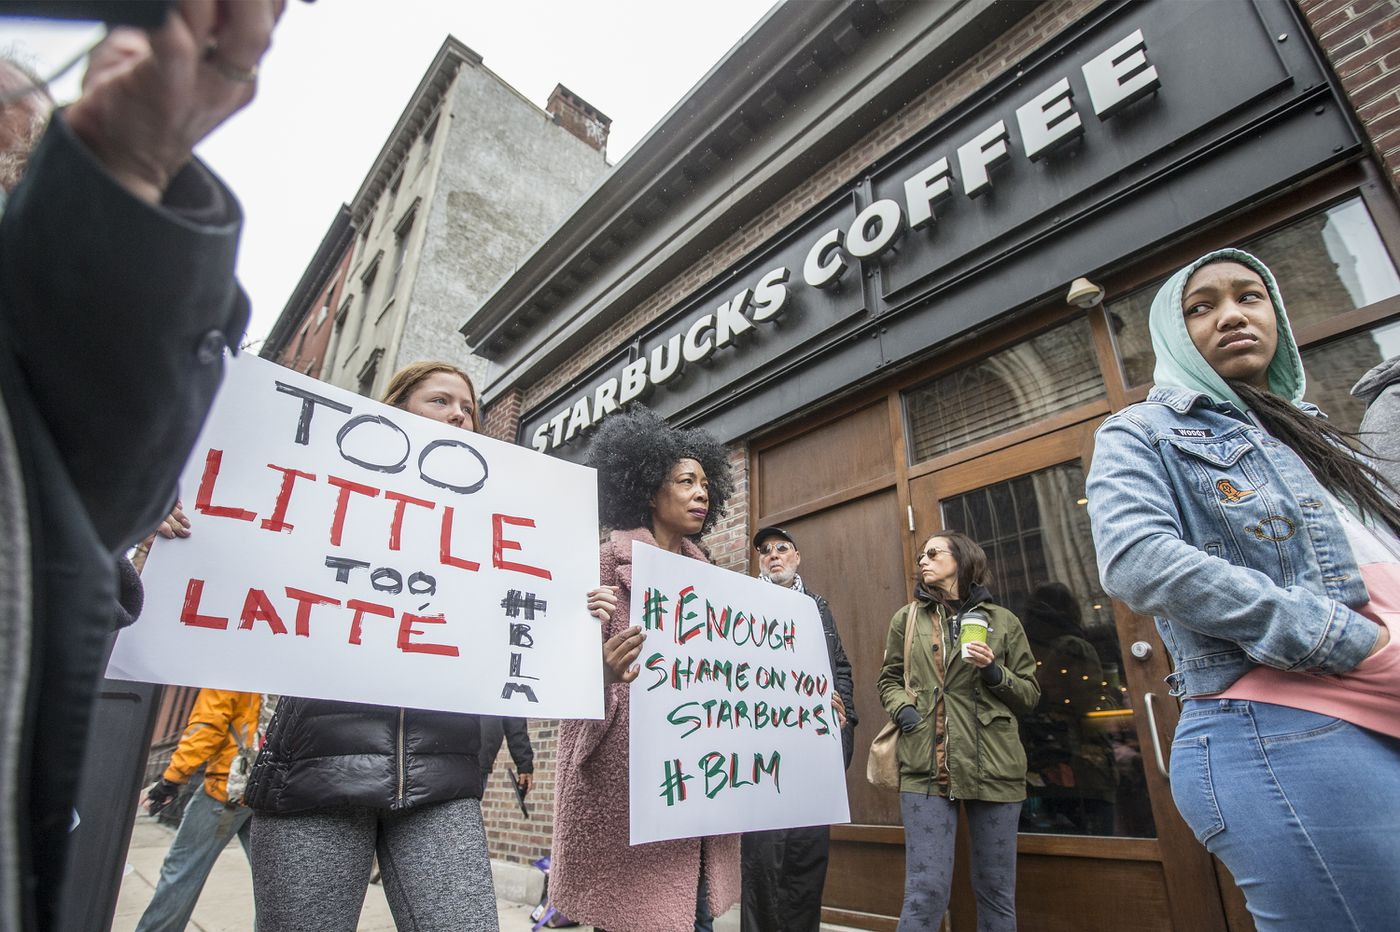 Philly cops issue new trespassing policy in response to criticism over Starbucks arrests